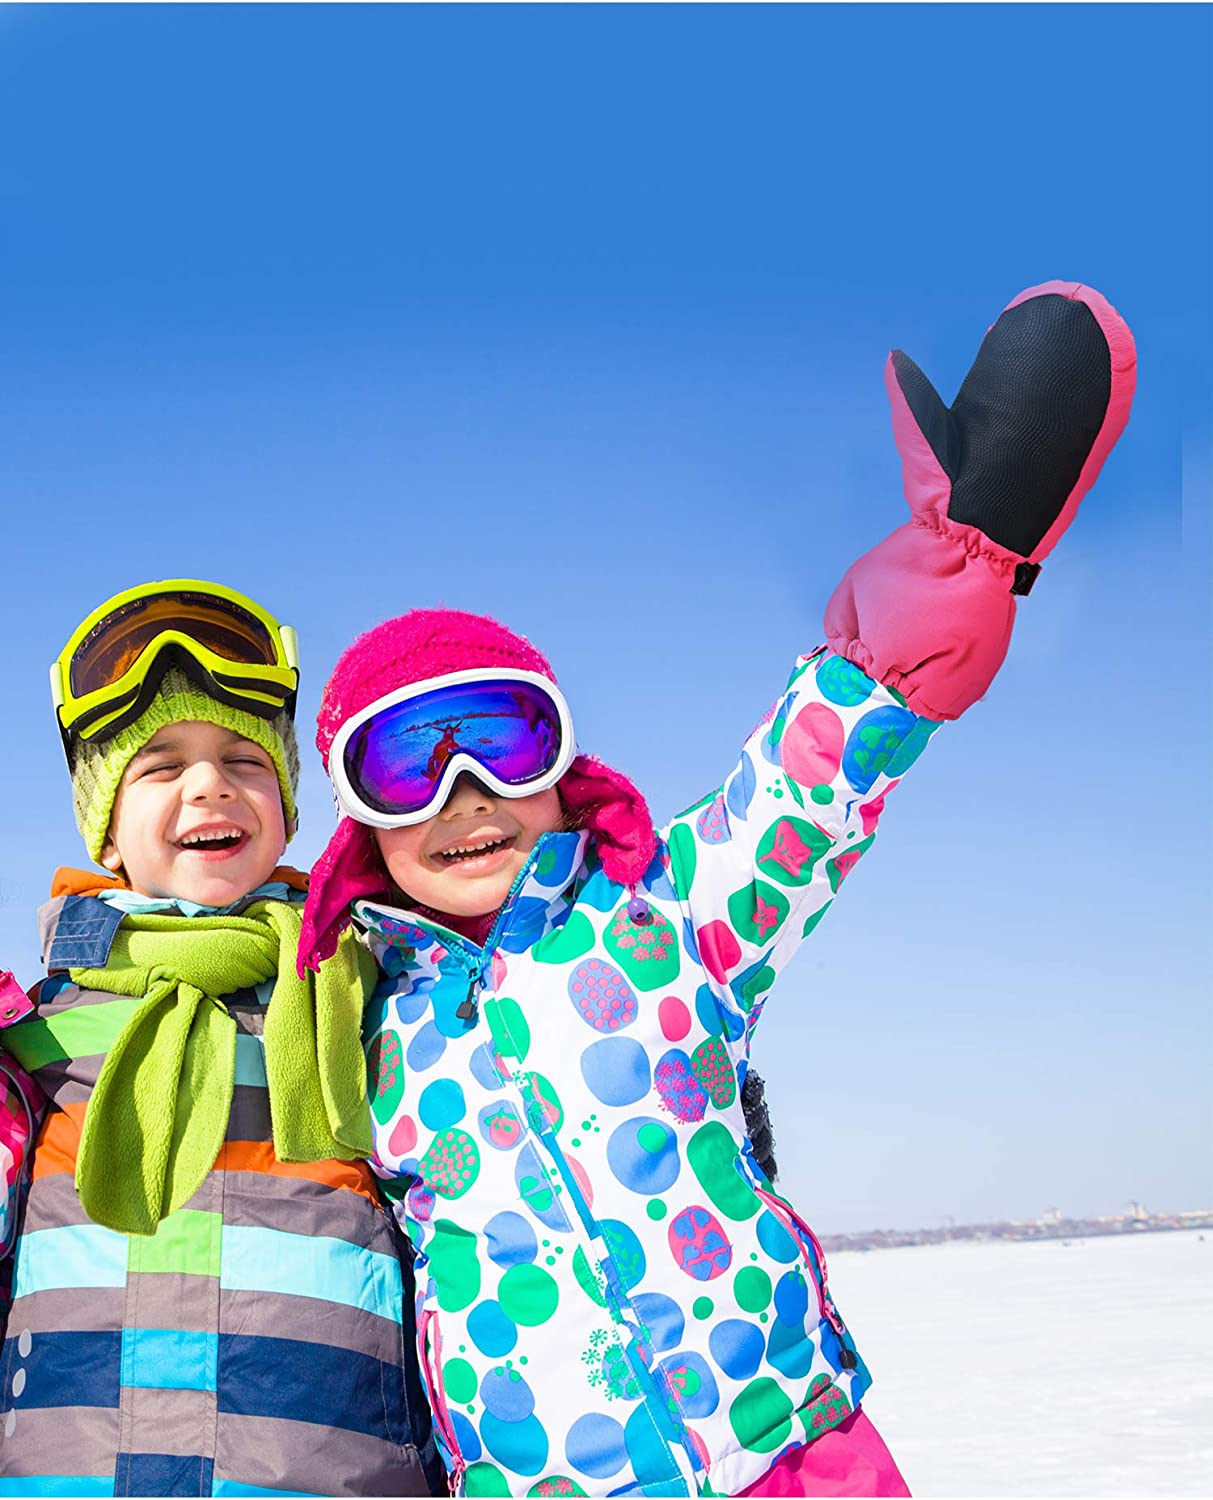 Hicarer 4 Pairs Kids Ski Mittens Waterproof Snow Gloves Winter Warm Snowboard Mittens for Cold Weather Outdoor